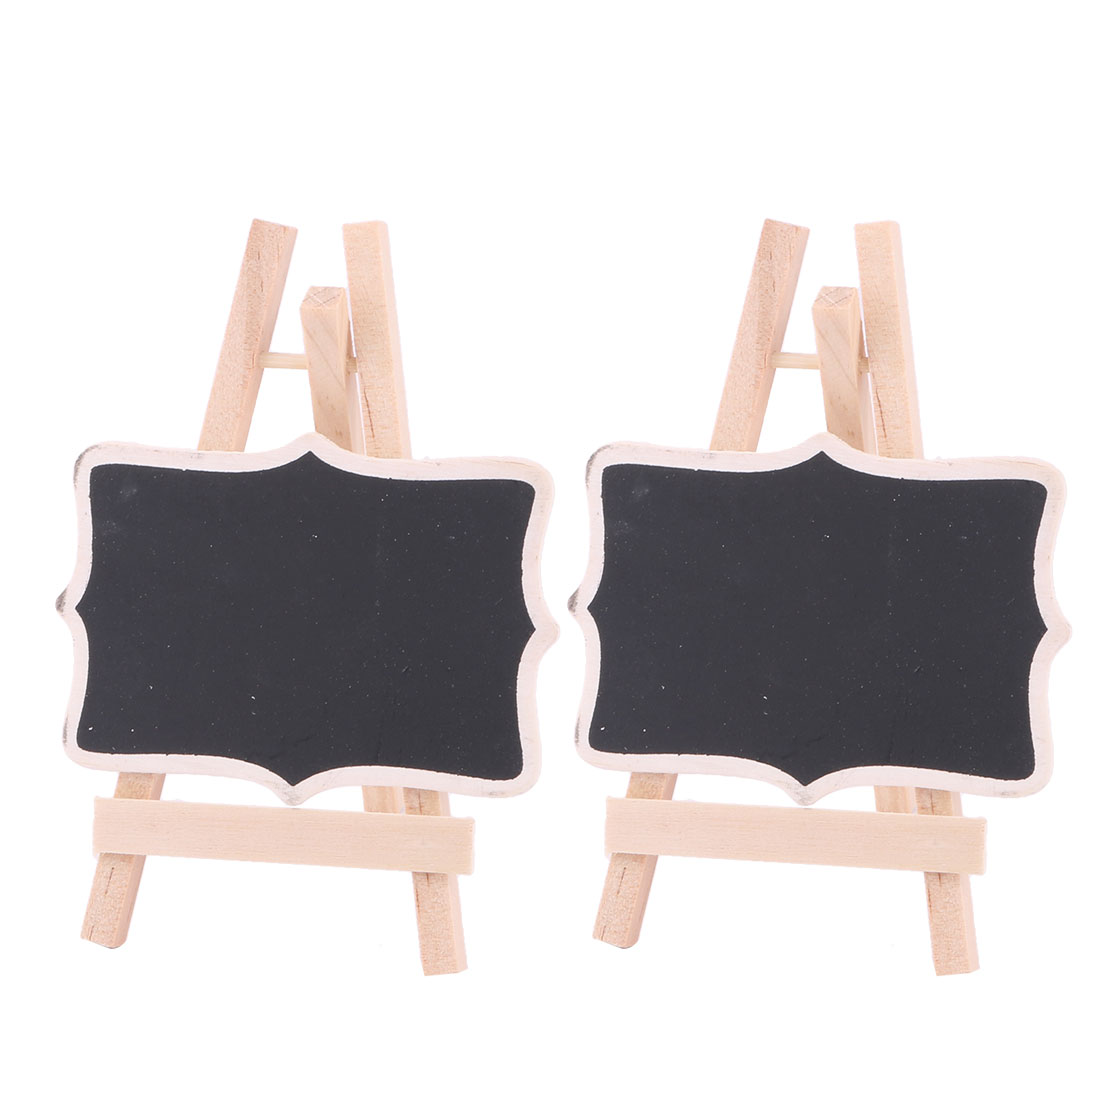 Wood Standing Message Board Table Number Sign Chalkboard Blackboard 2pcs